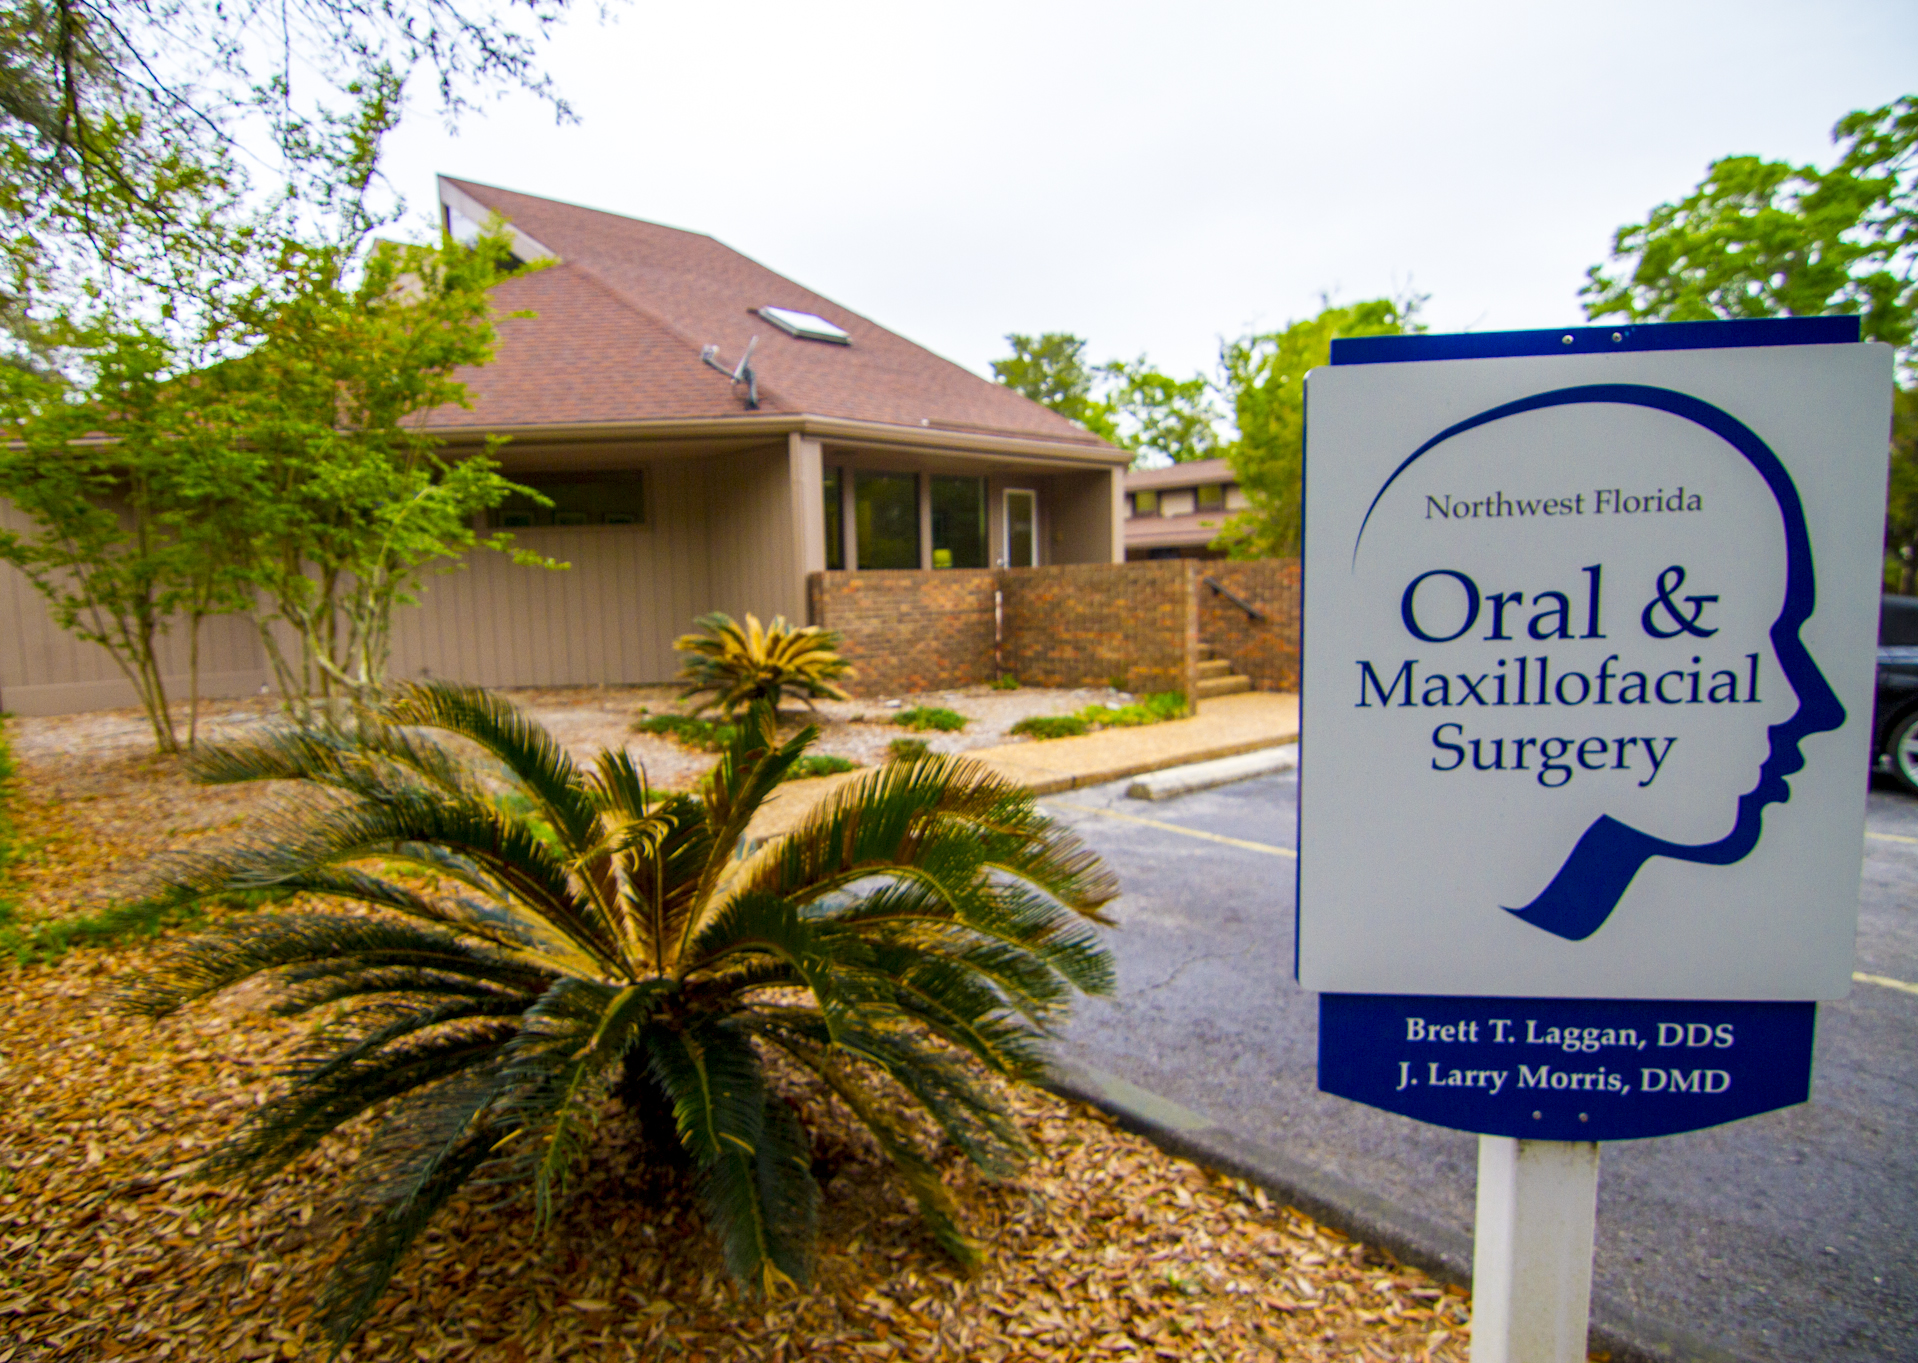 Northwest Florida Oral and Maxillofacial Surgery